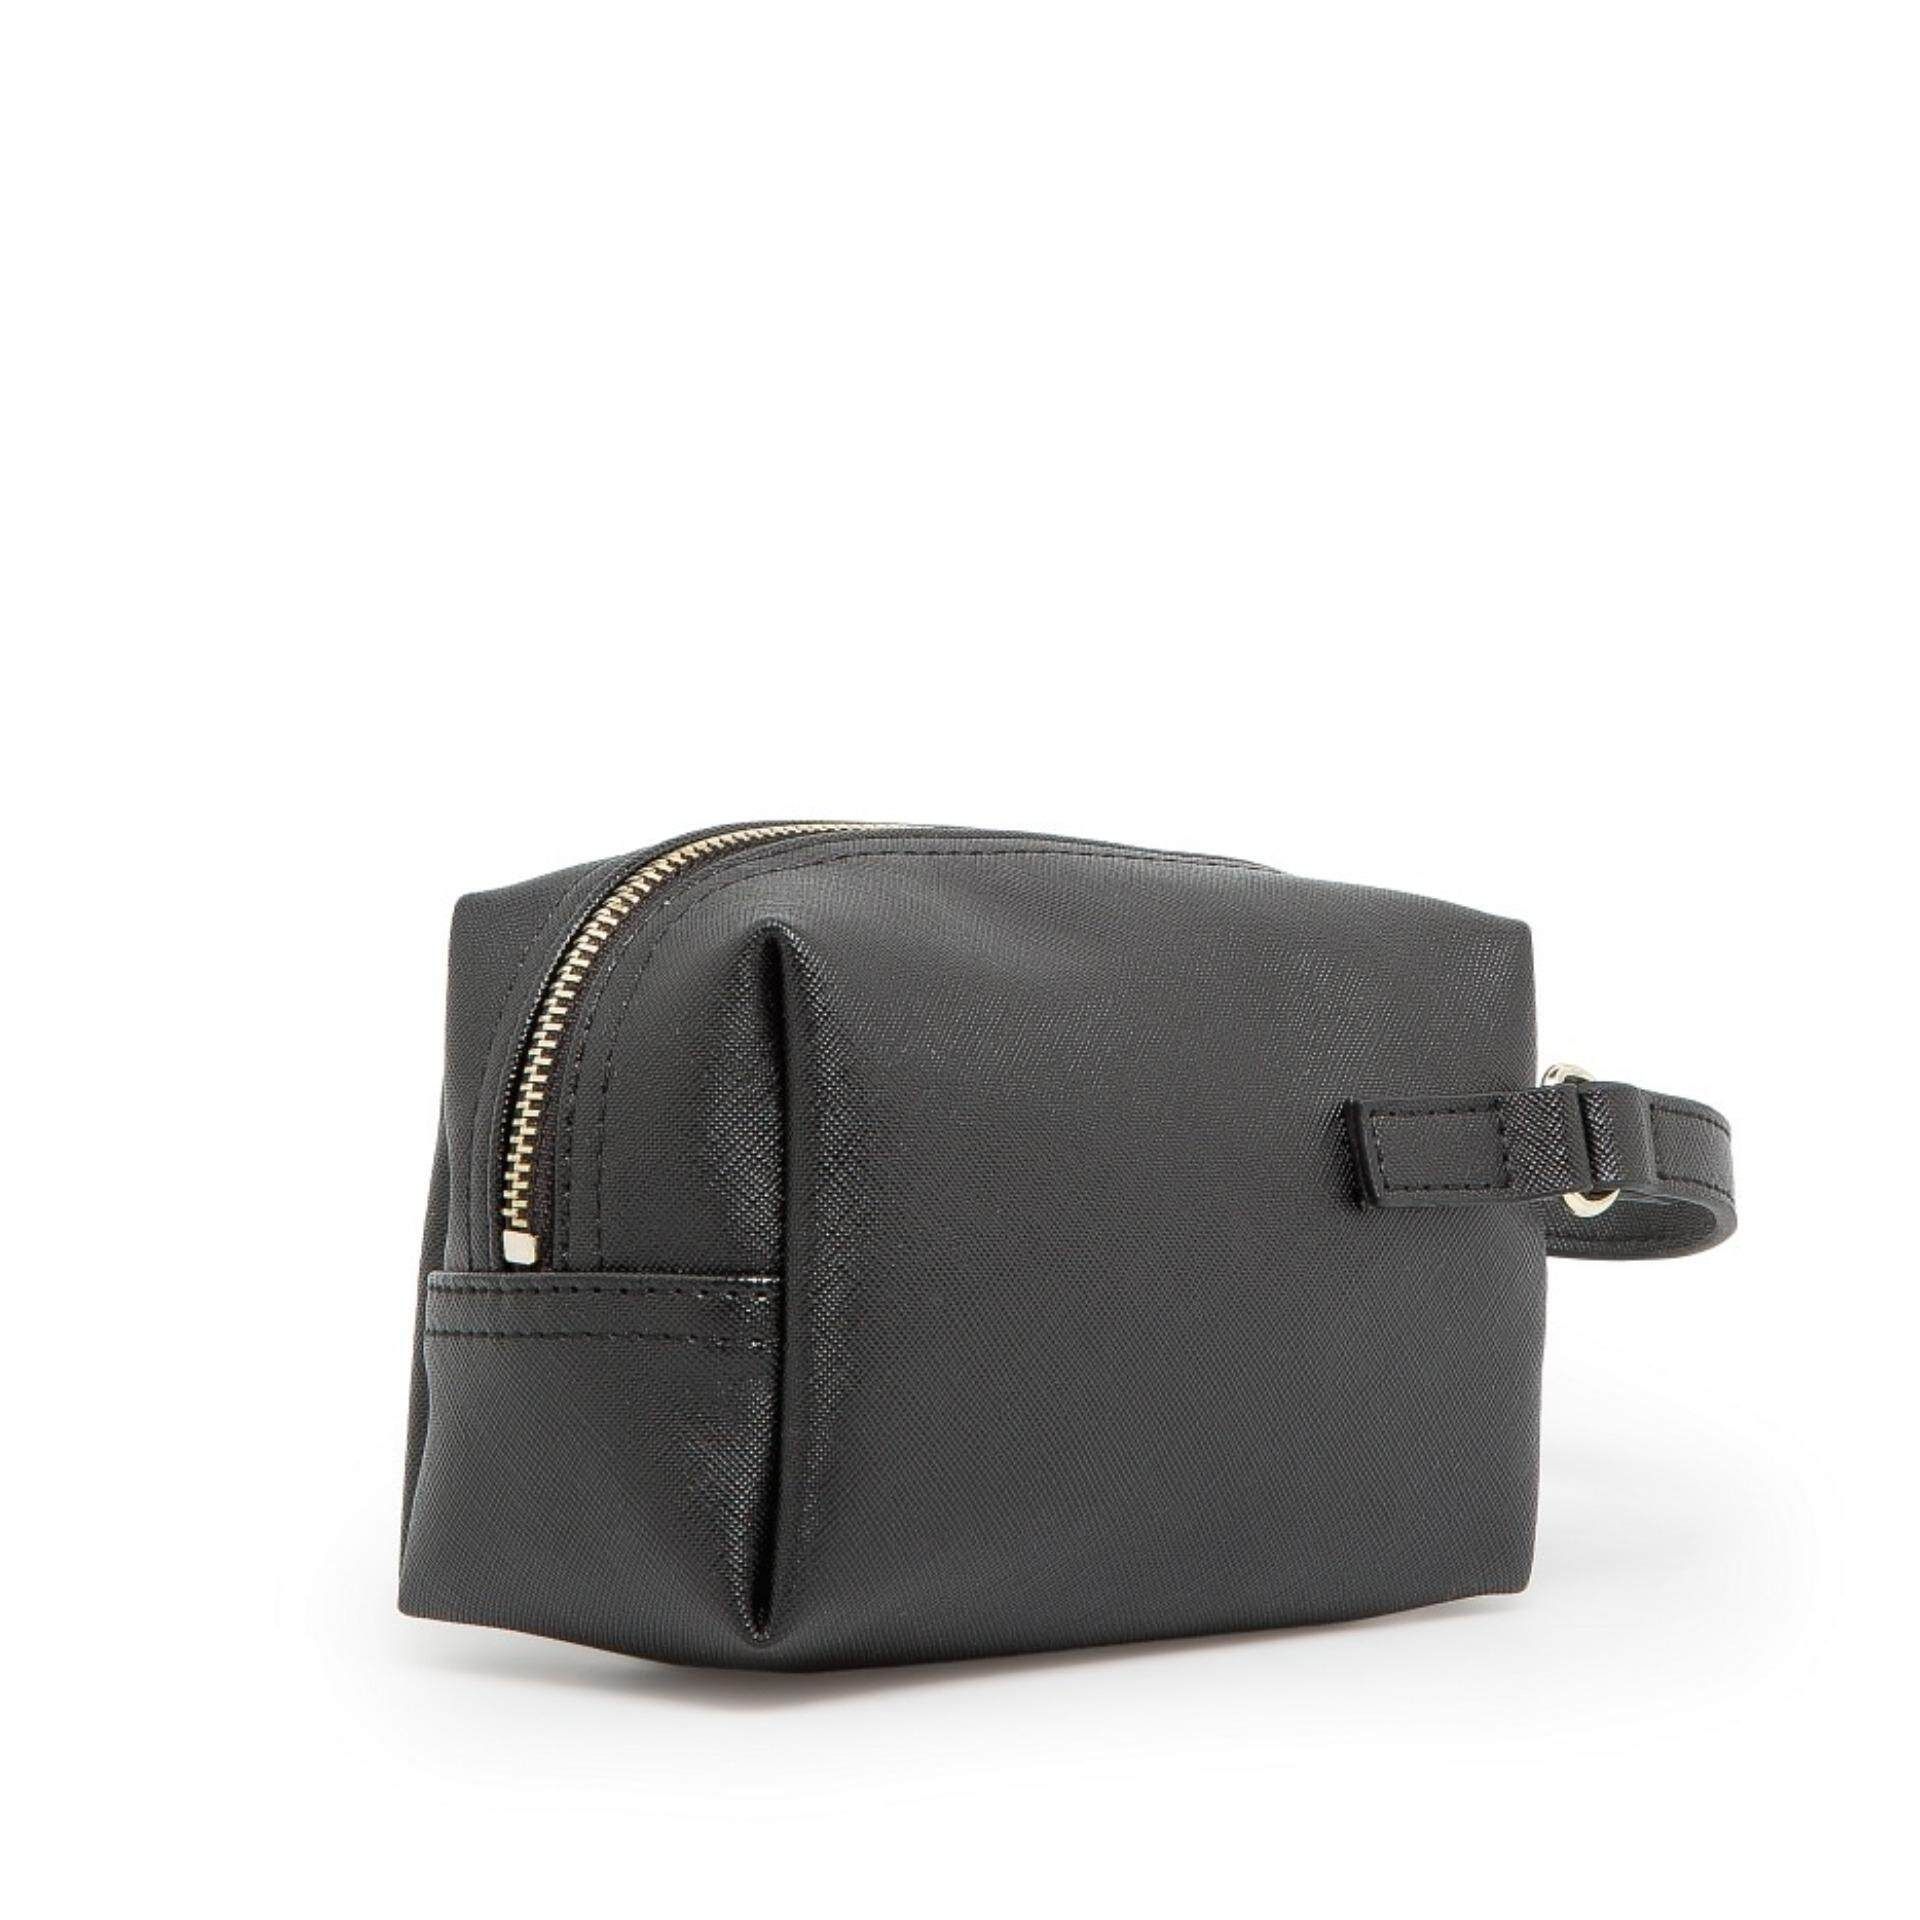 MNG Cosmetic Makeup Pouch / Small Bag / Mini Bag / Coin Purse (Black)